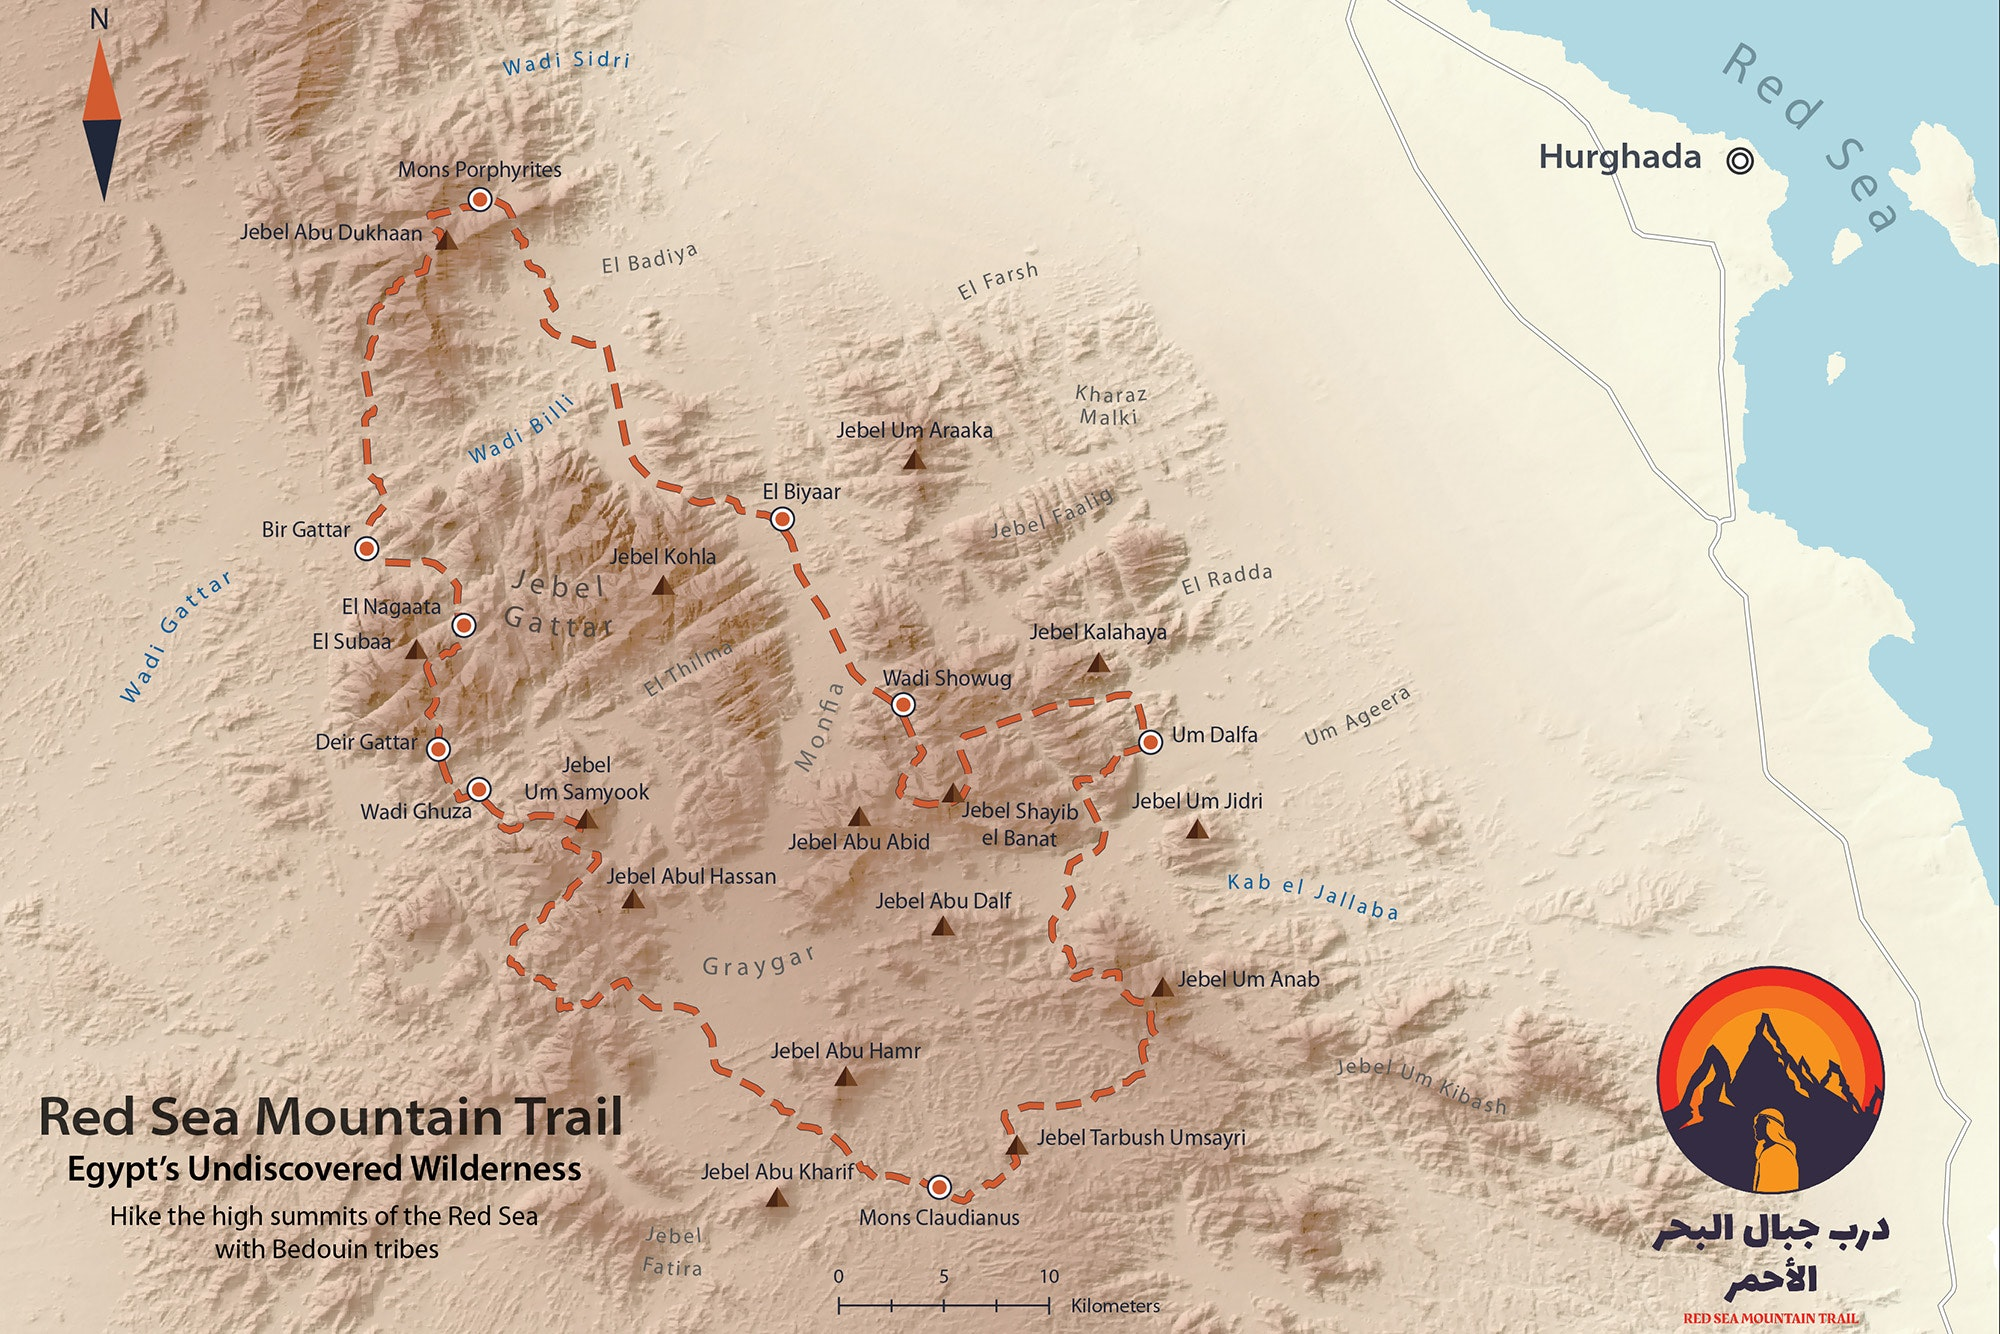 The route the Red Sea Mountain Trail covers in Egypt